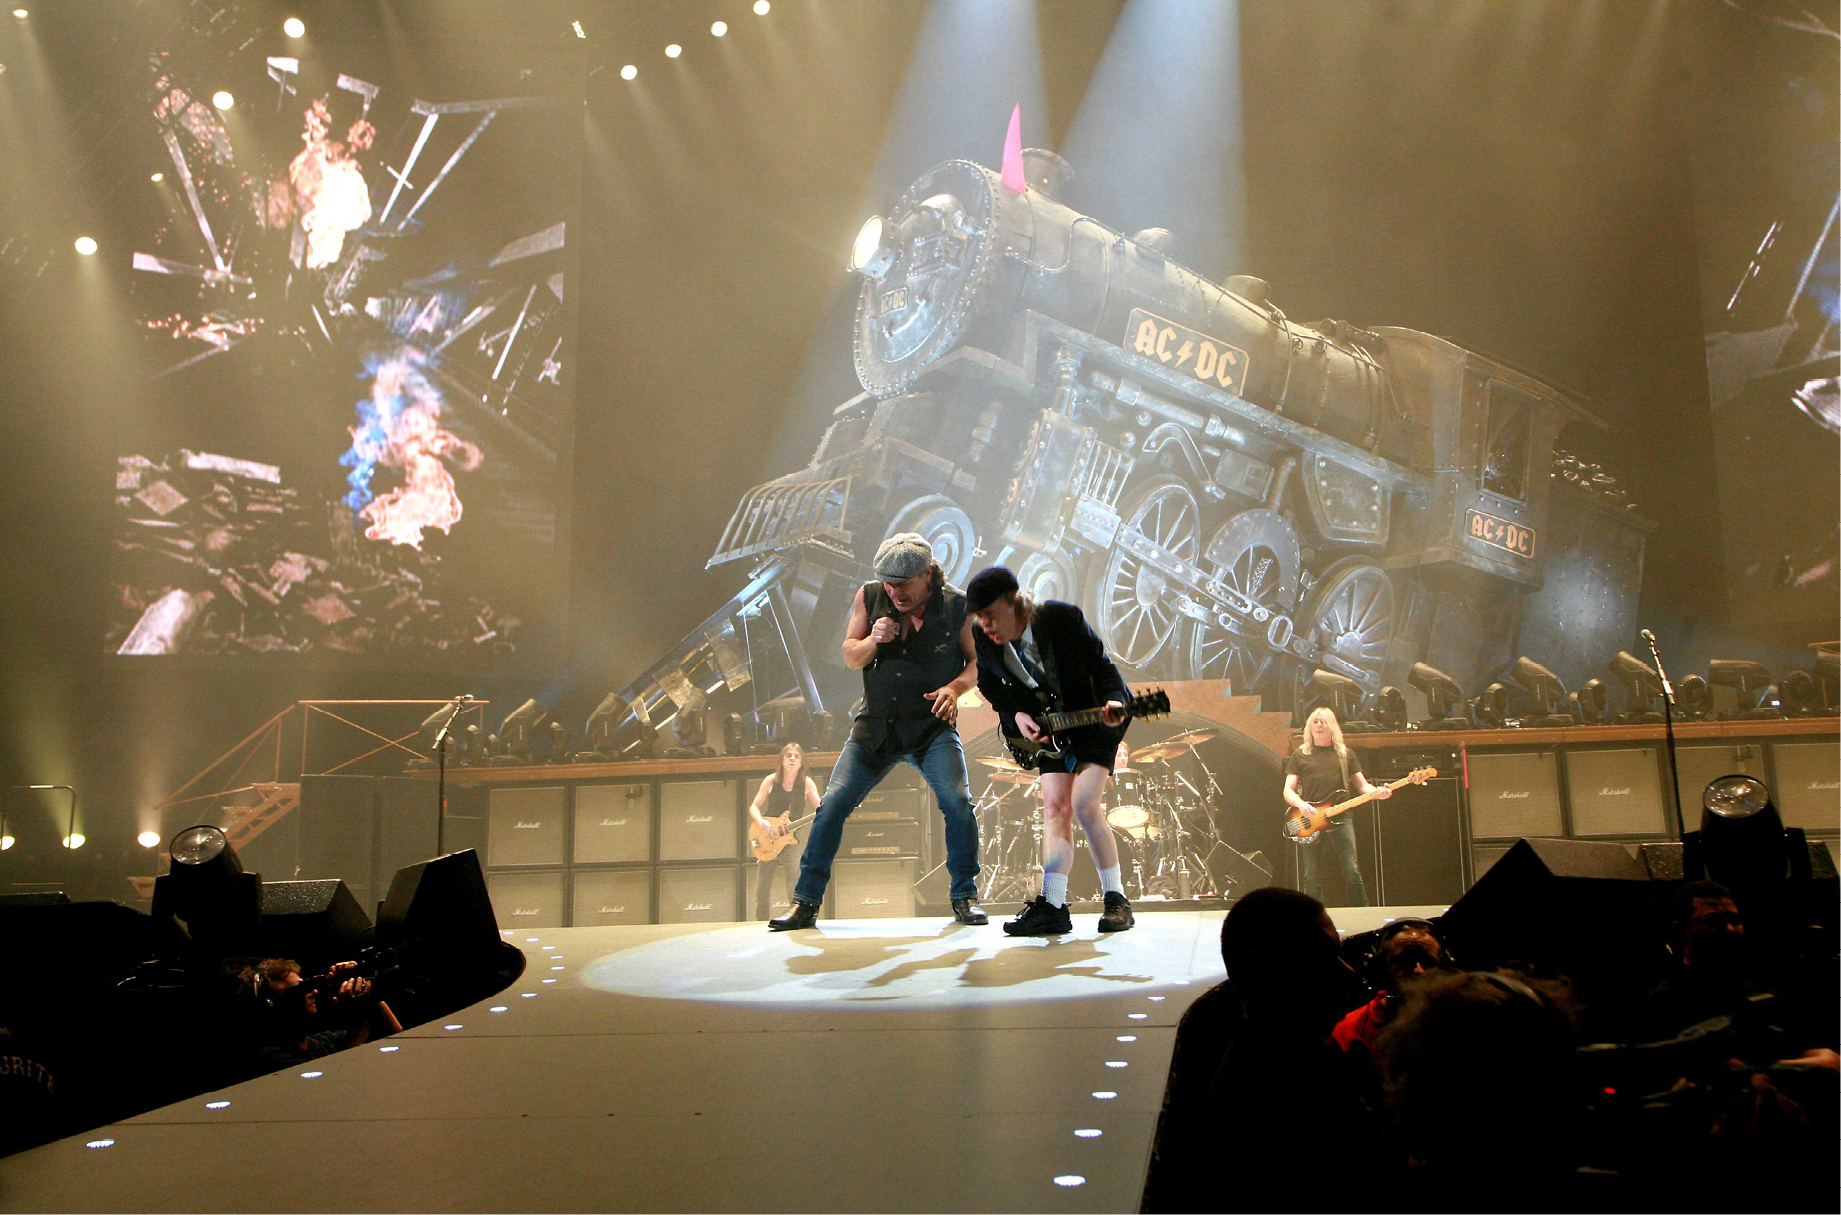 Singer Brian Johnson and Angus Young of the Australian rock band AC/DC perform in concert at the Palais Omnisport of Paris Bercy on their 'Black Ice World Tour'. Paris, FRANCE-25/02/2009.